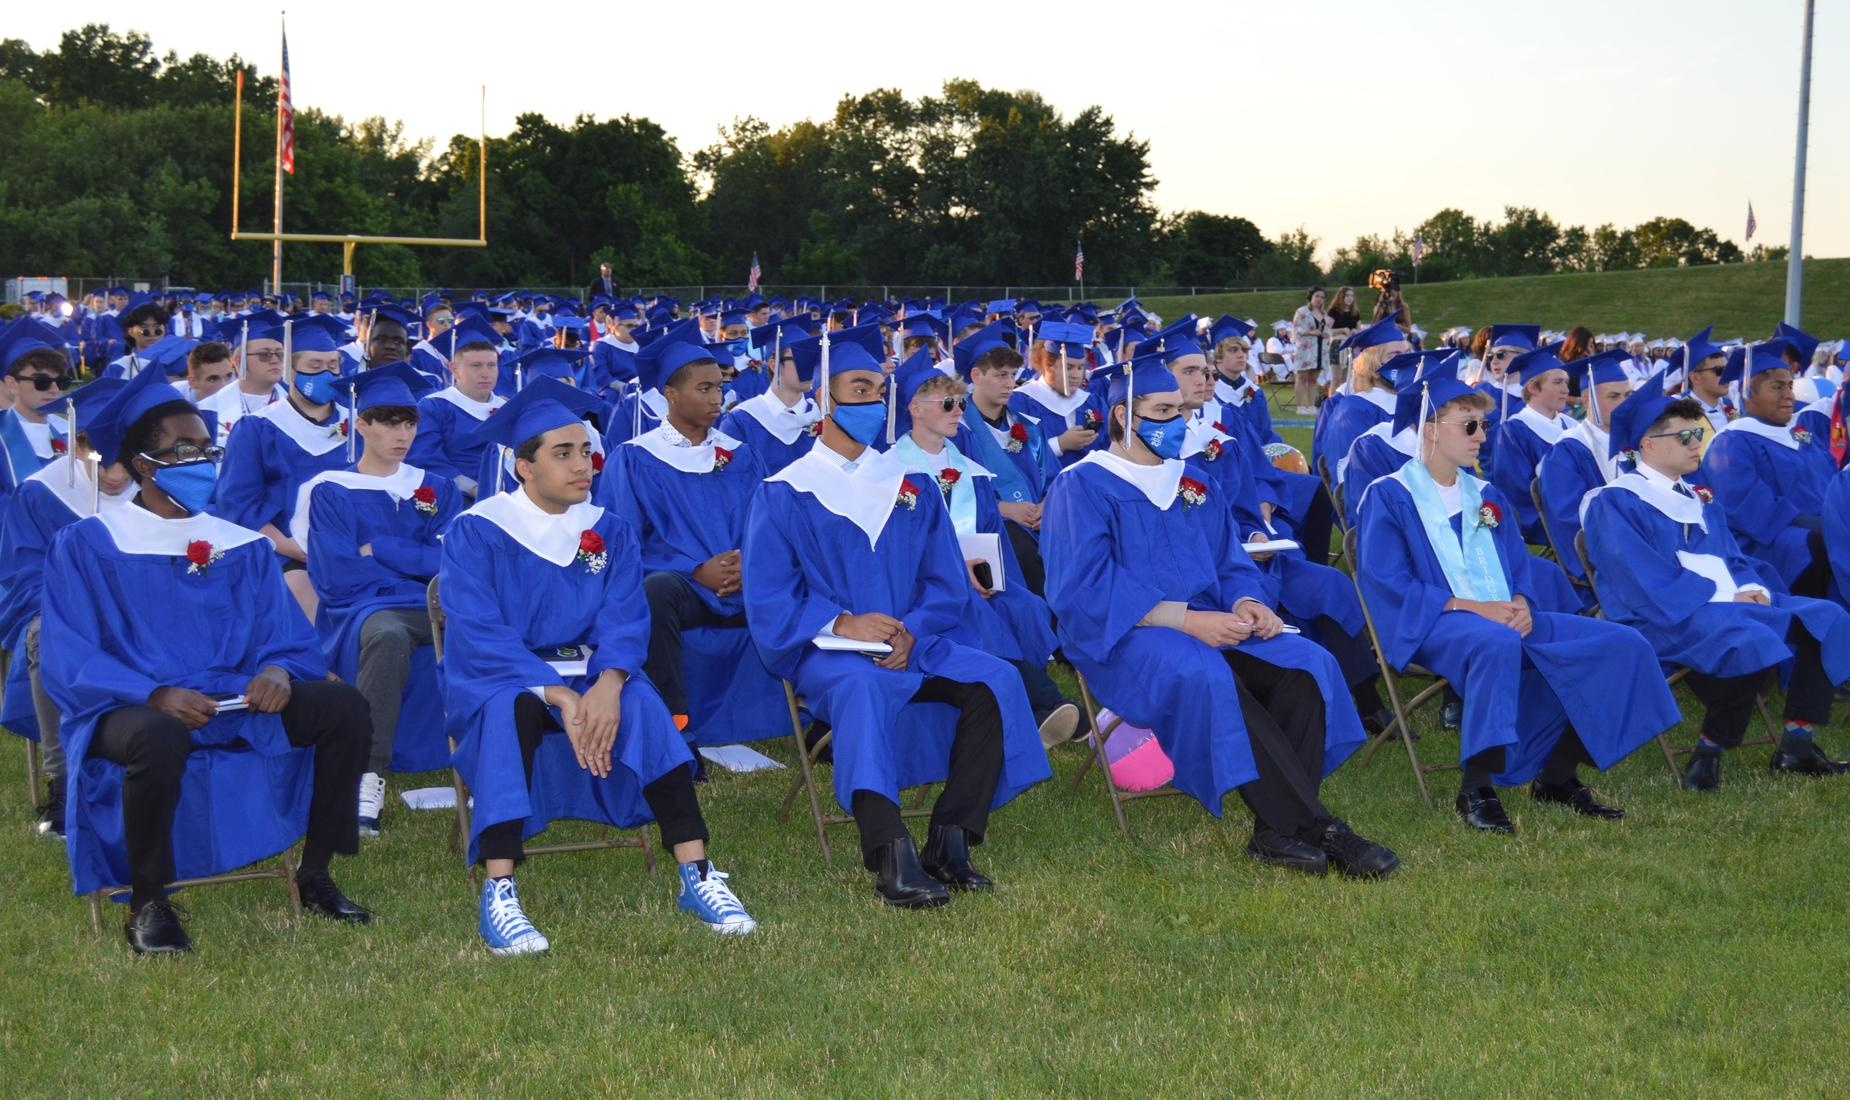 BHS Senior boys sitting in their royal blue cap and gowns listening to the Class Officers speeches